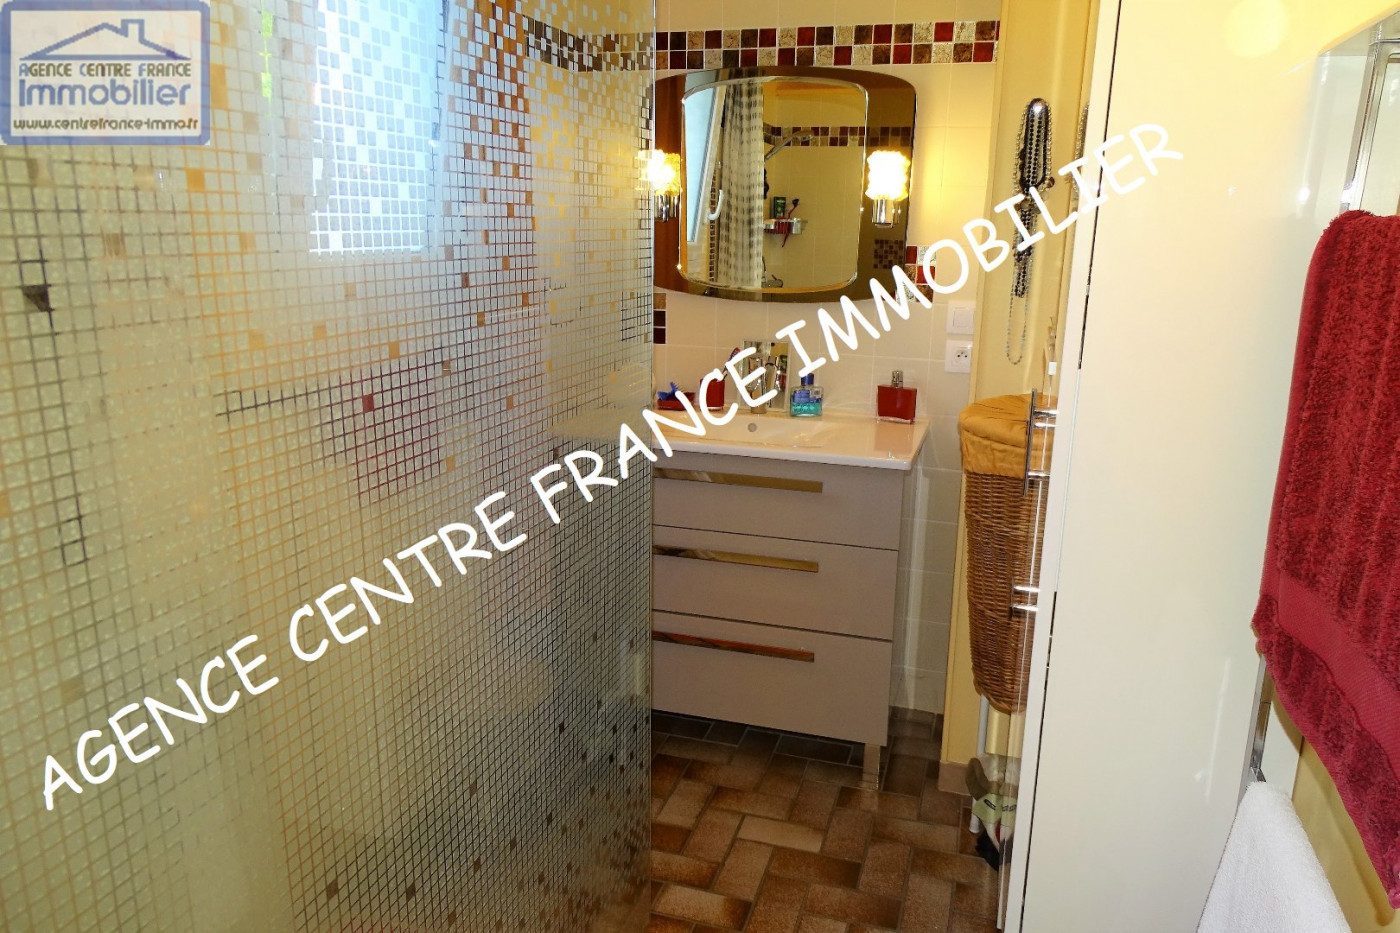 A vendre Bourges 030011427 Agence centre france immobilier